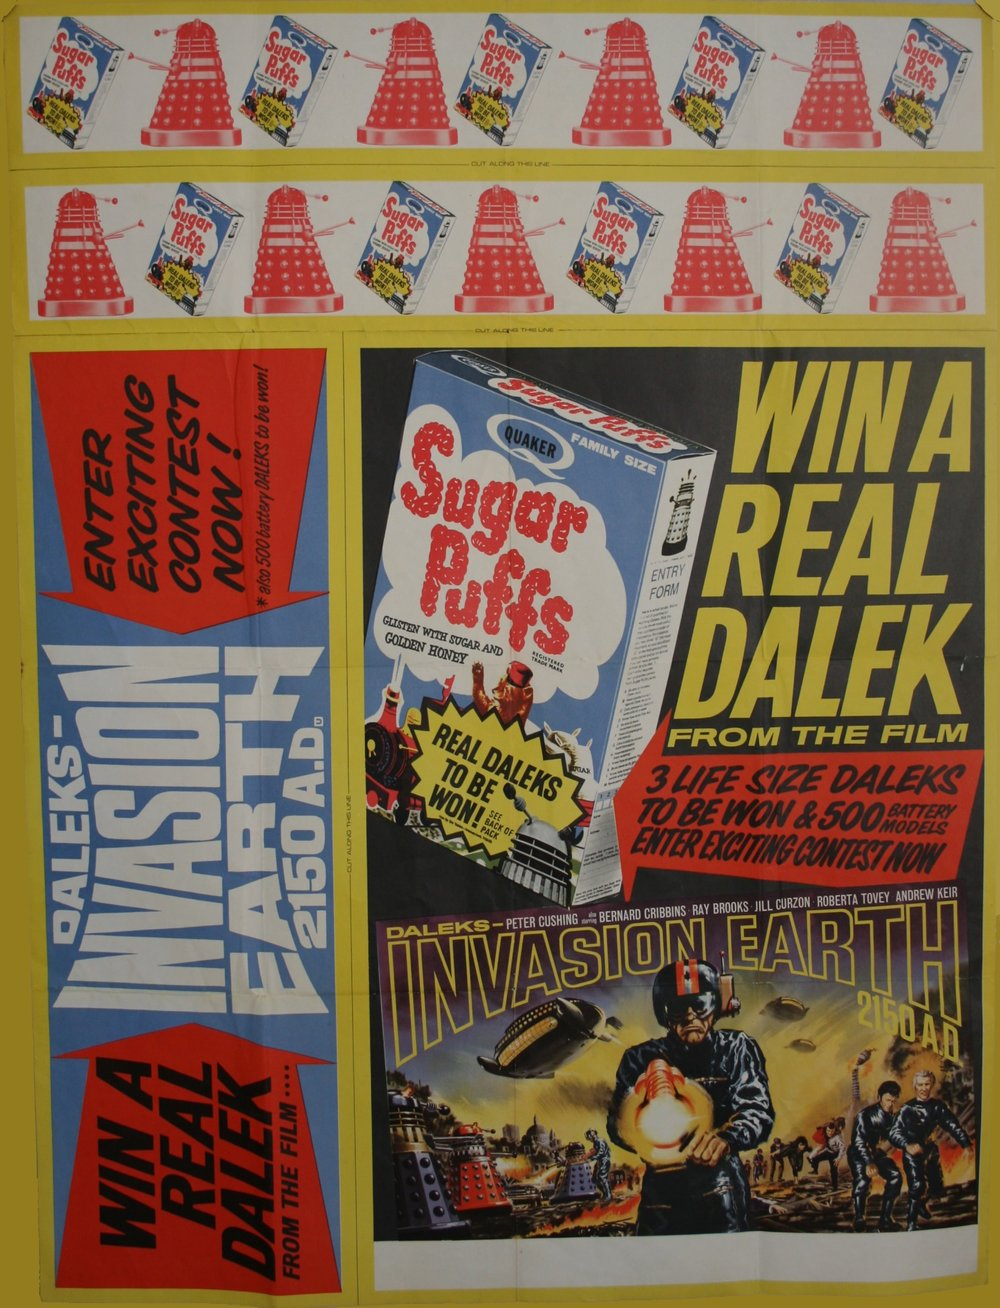 Sugar Puffs Win a Dalek promotional poster (complete, uncut)